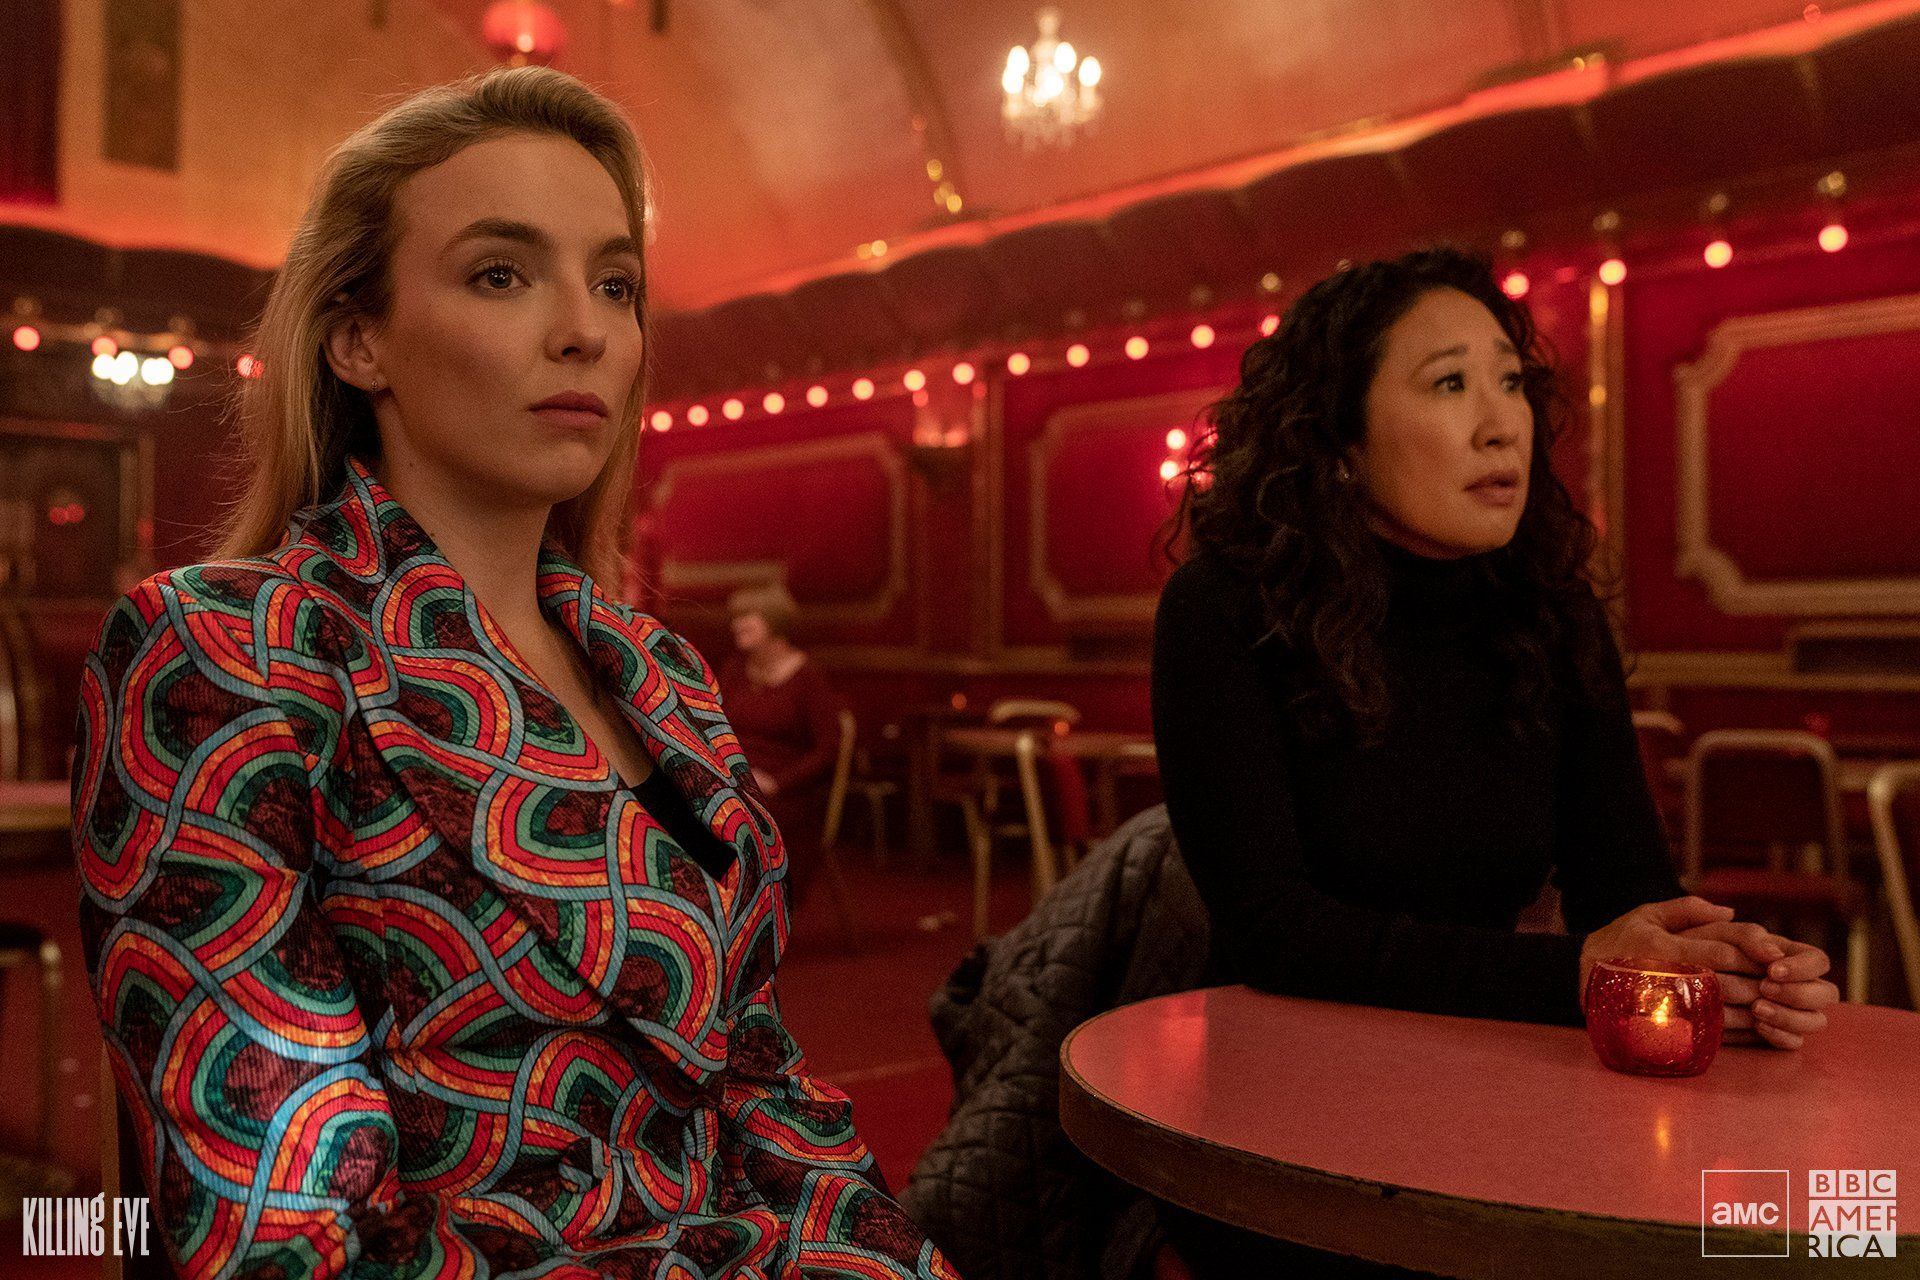 Killing Eve season 4 cast, writer, air date, plot and more